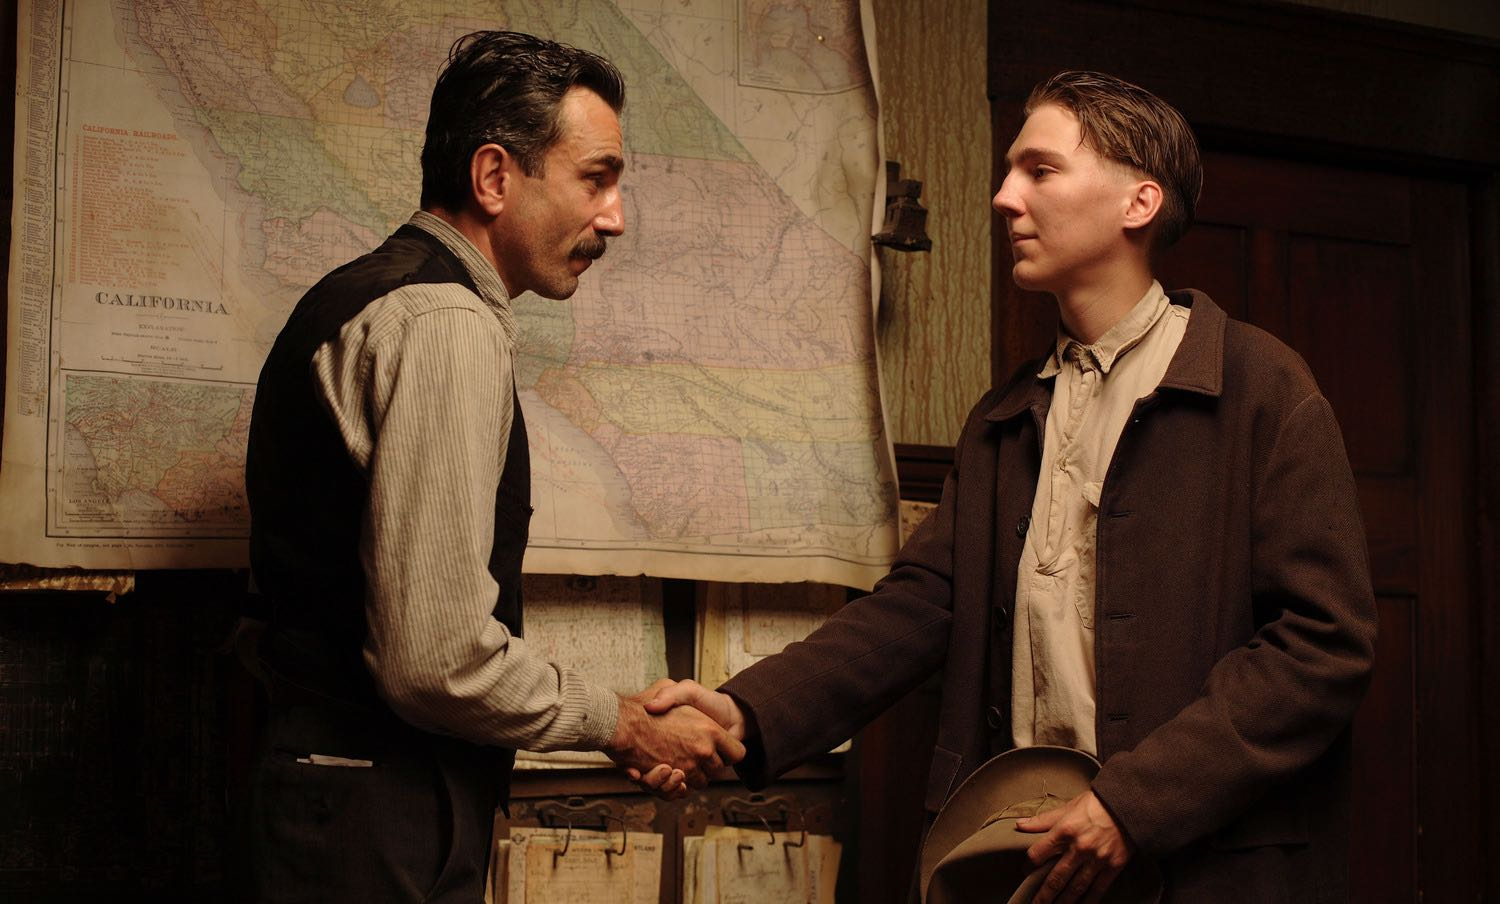 There Will Be Blood (2007) by Paul Thomas Anderson